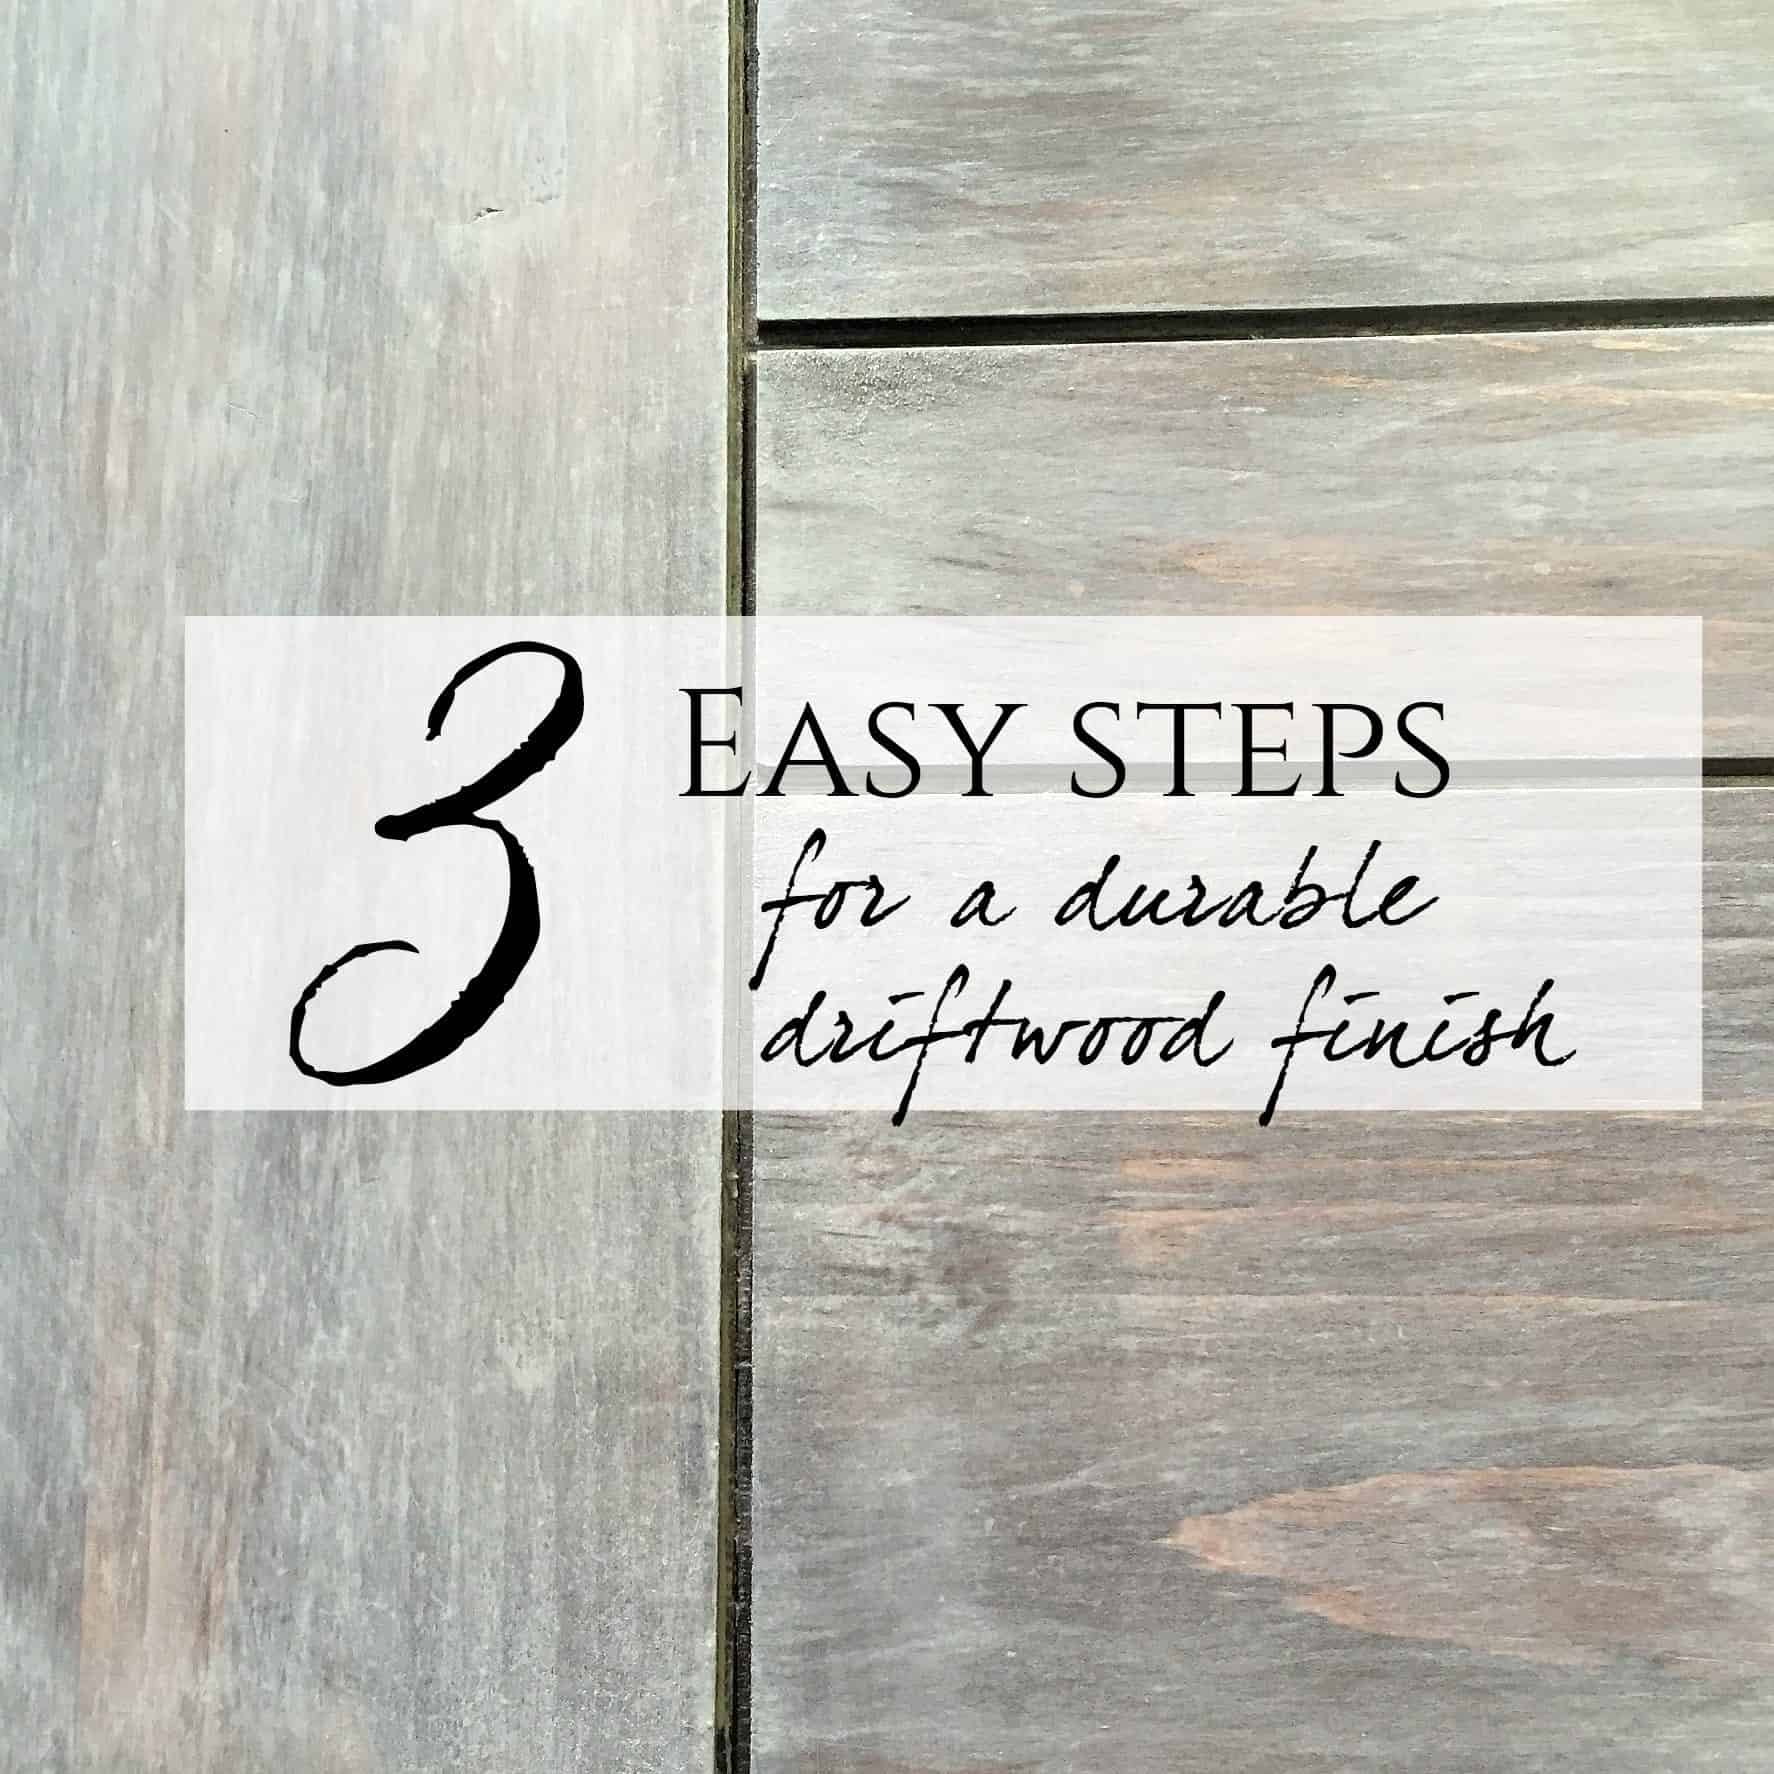 3 step durable driftwood finish